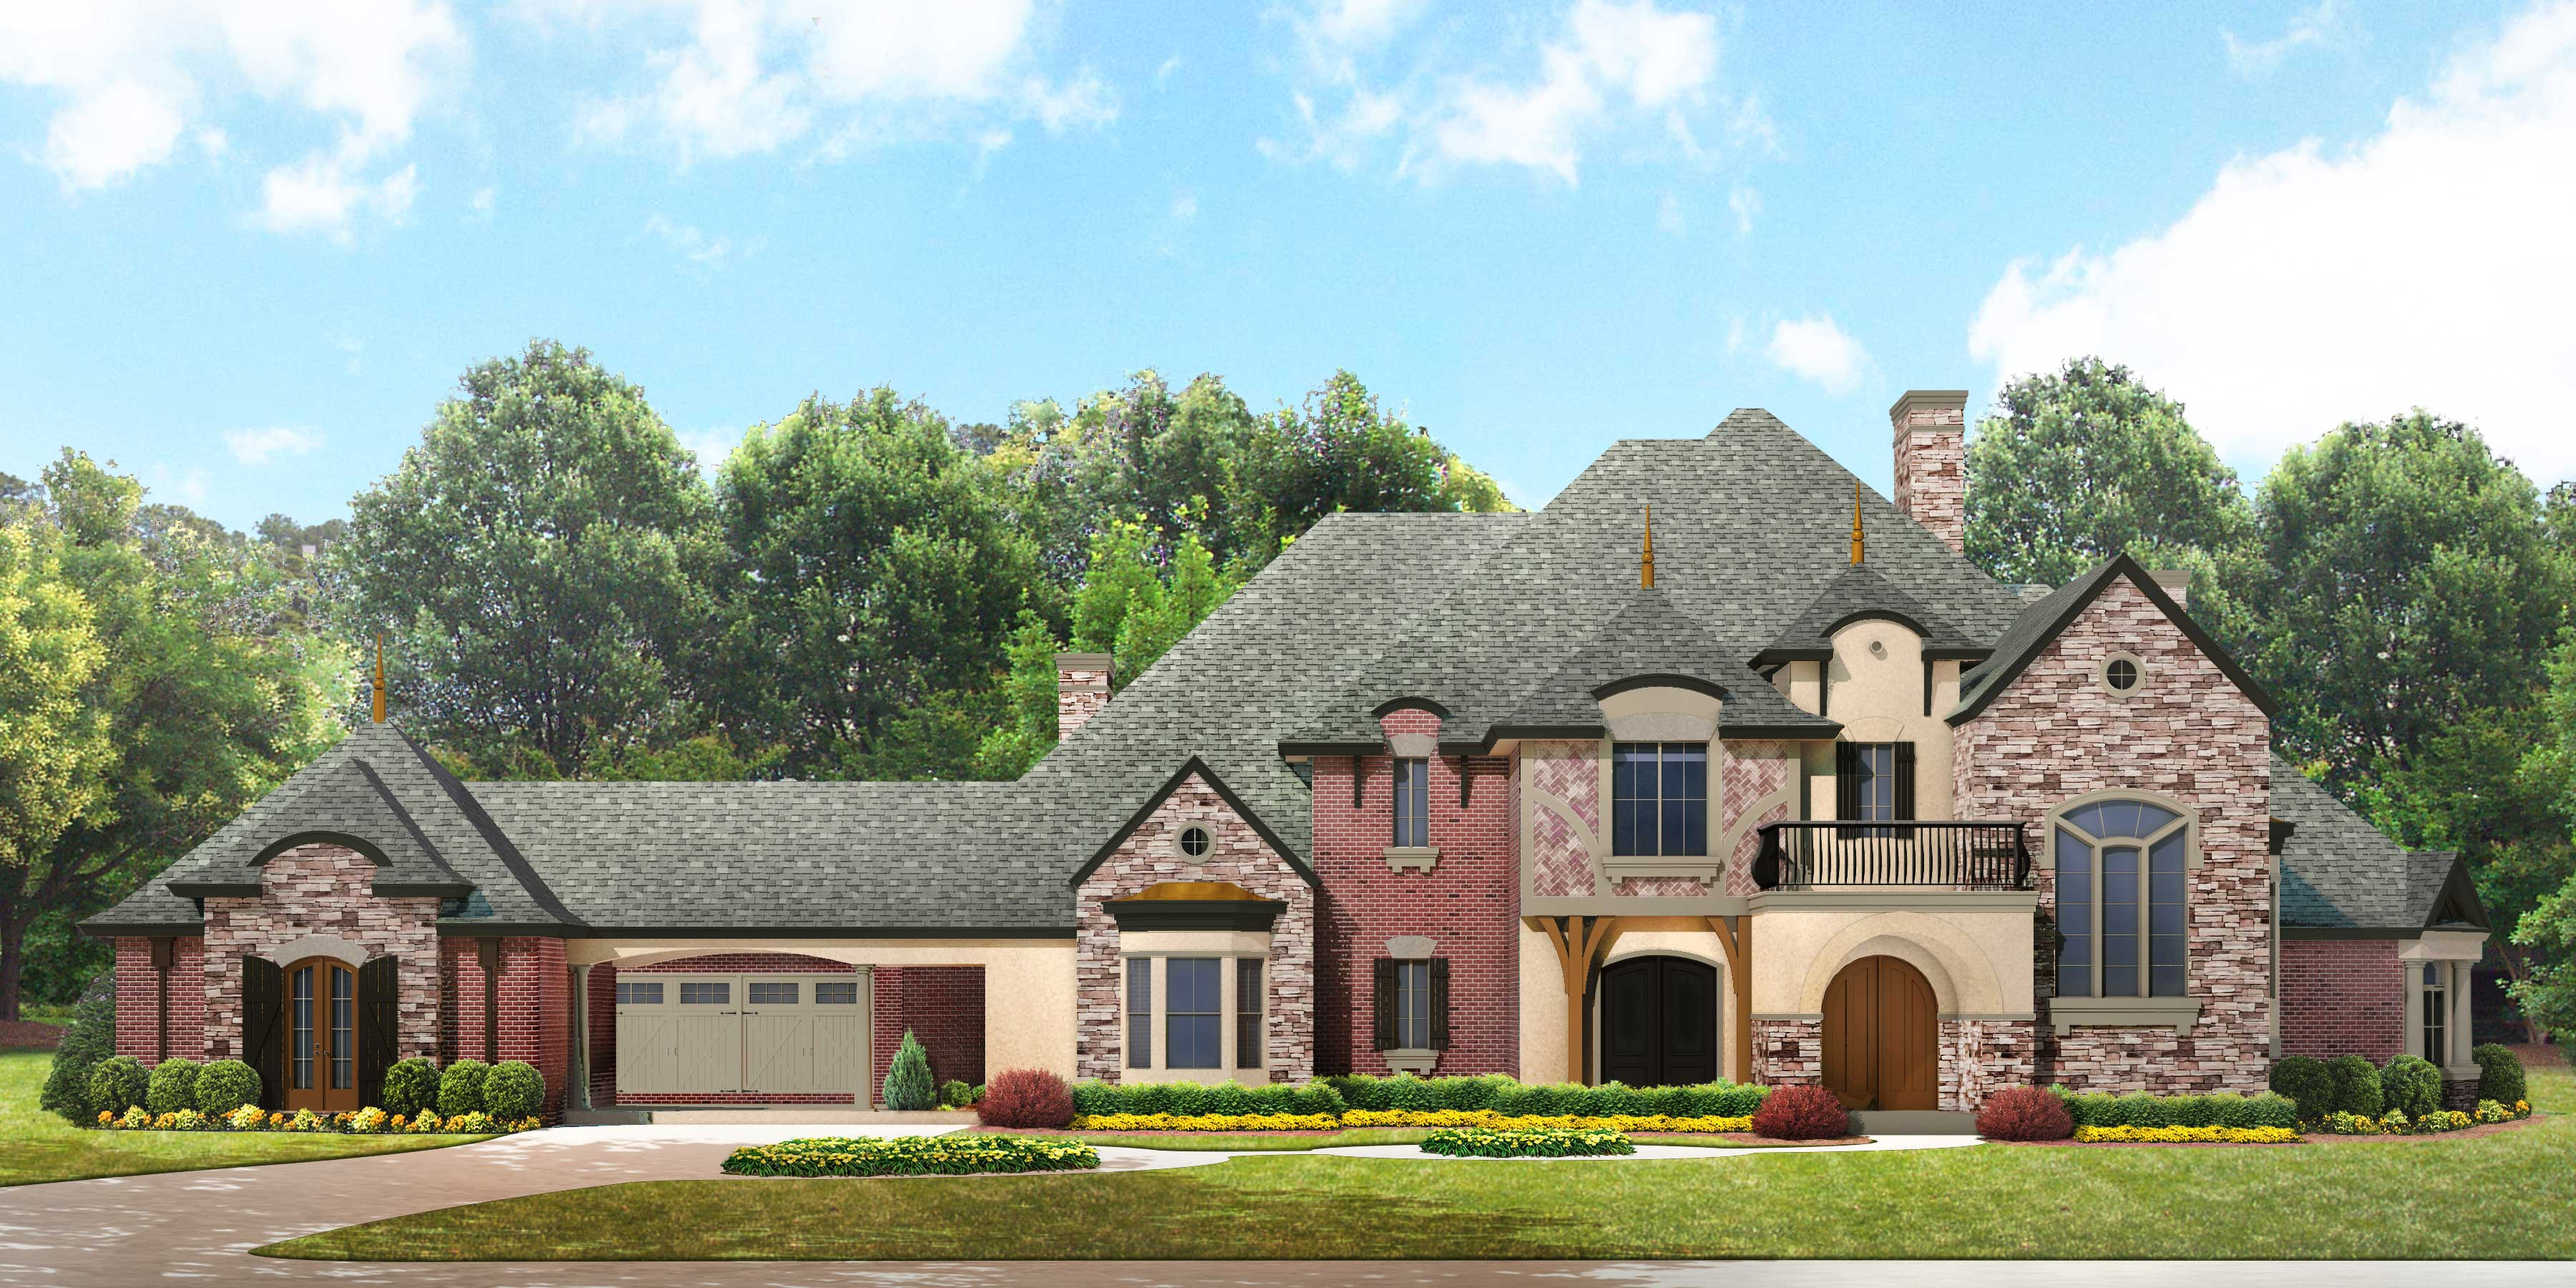 European manor house plan 134 1350 4 bedrm 5303 sq ft for European homes